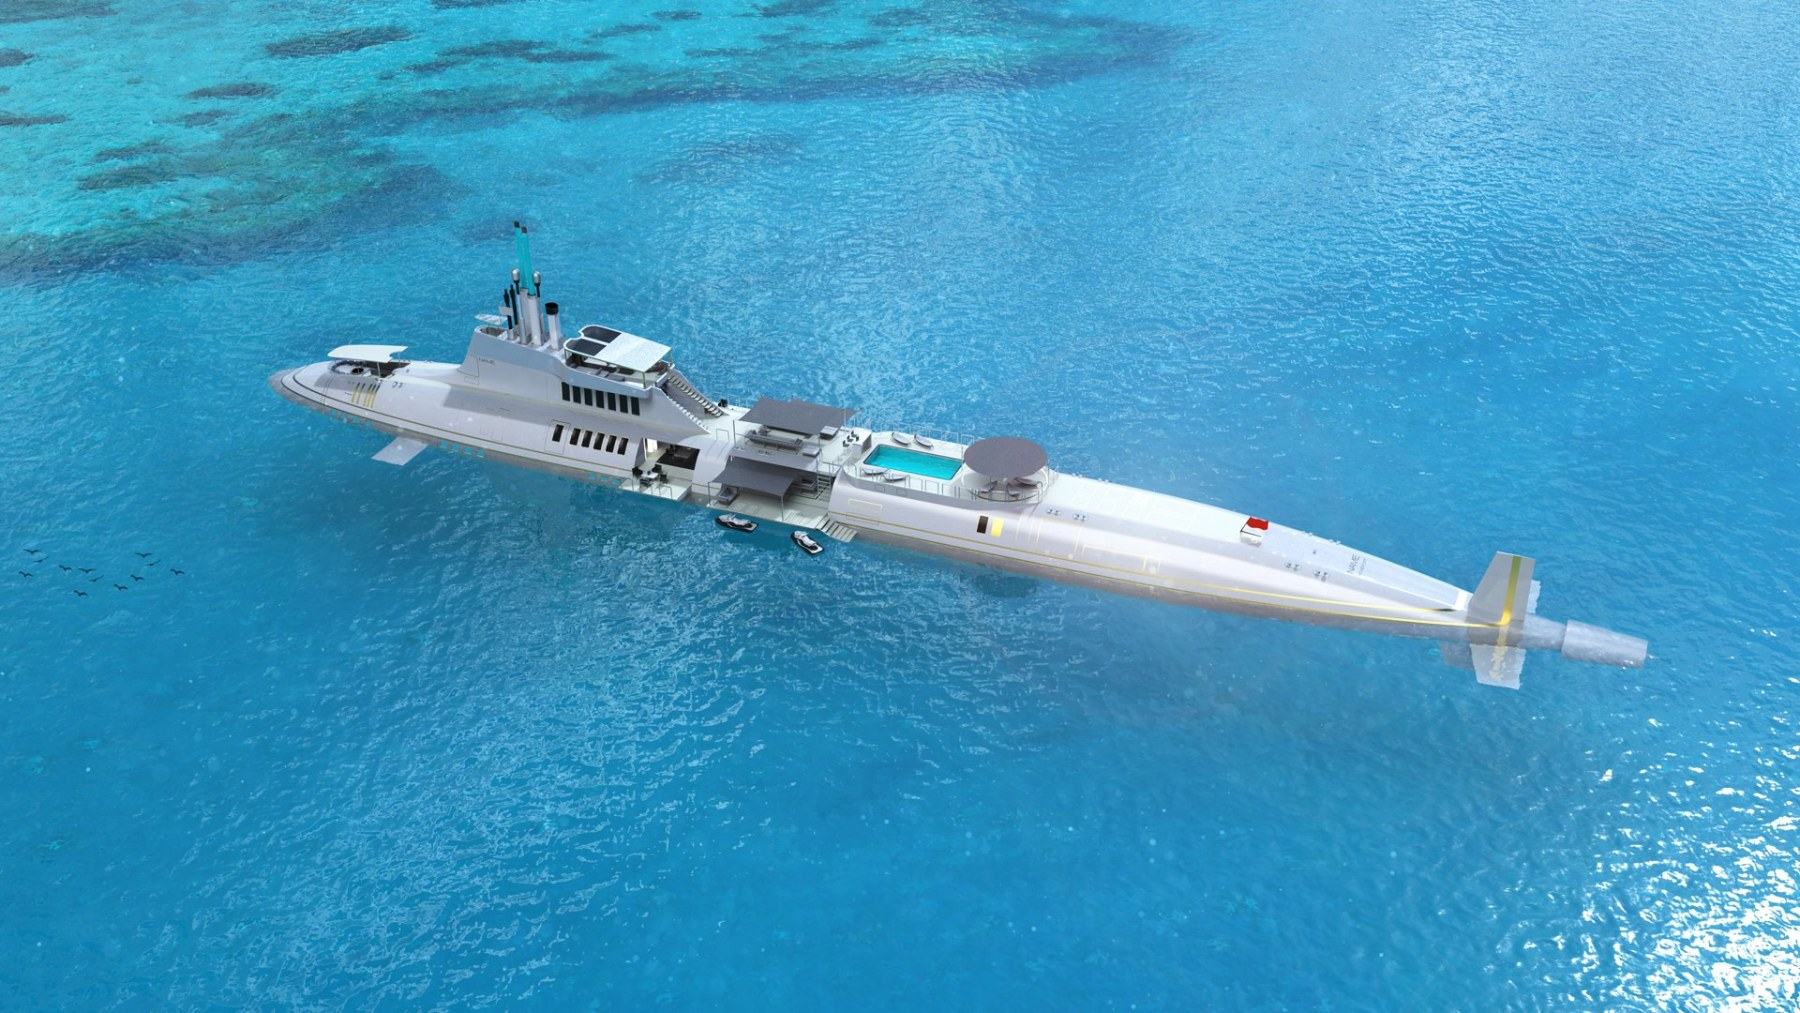 This Submersible Yacht Comes With Luxury Amenities